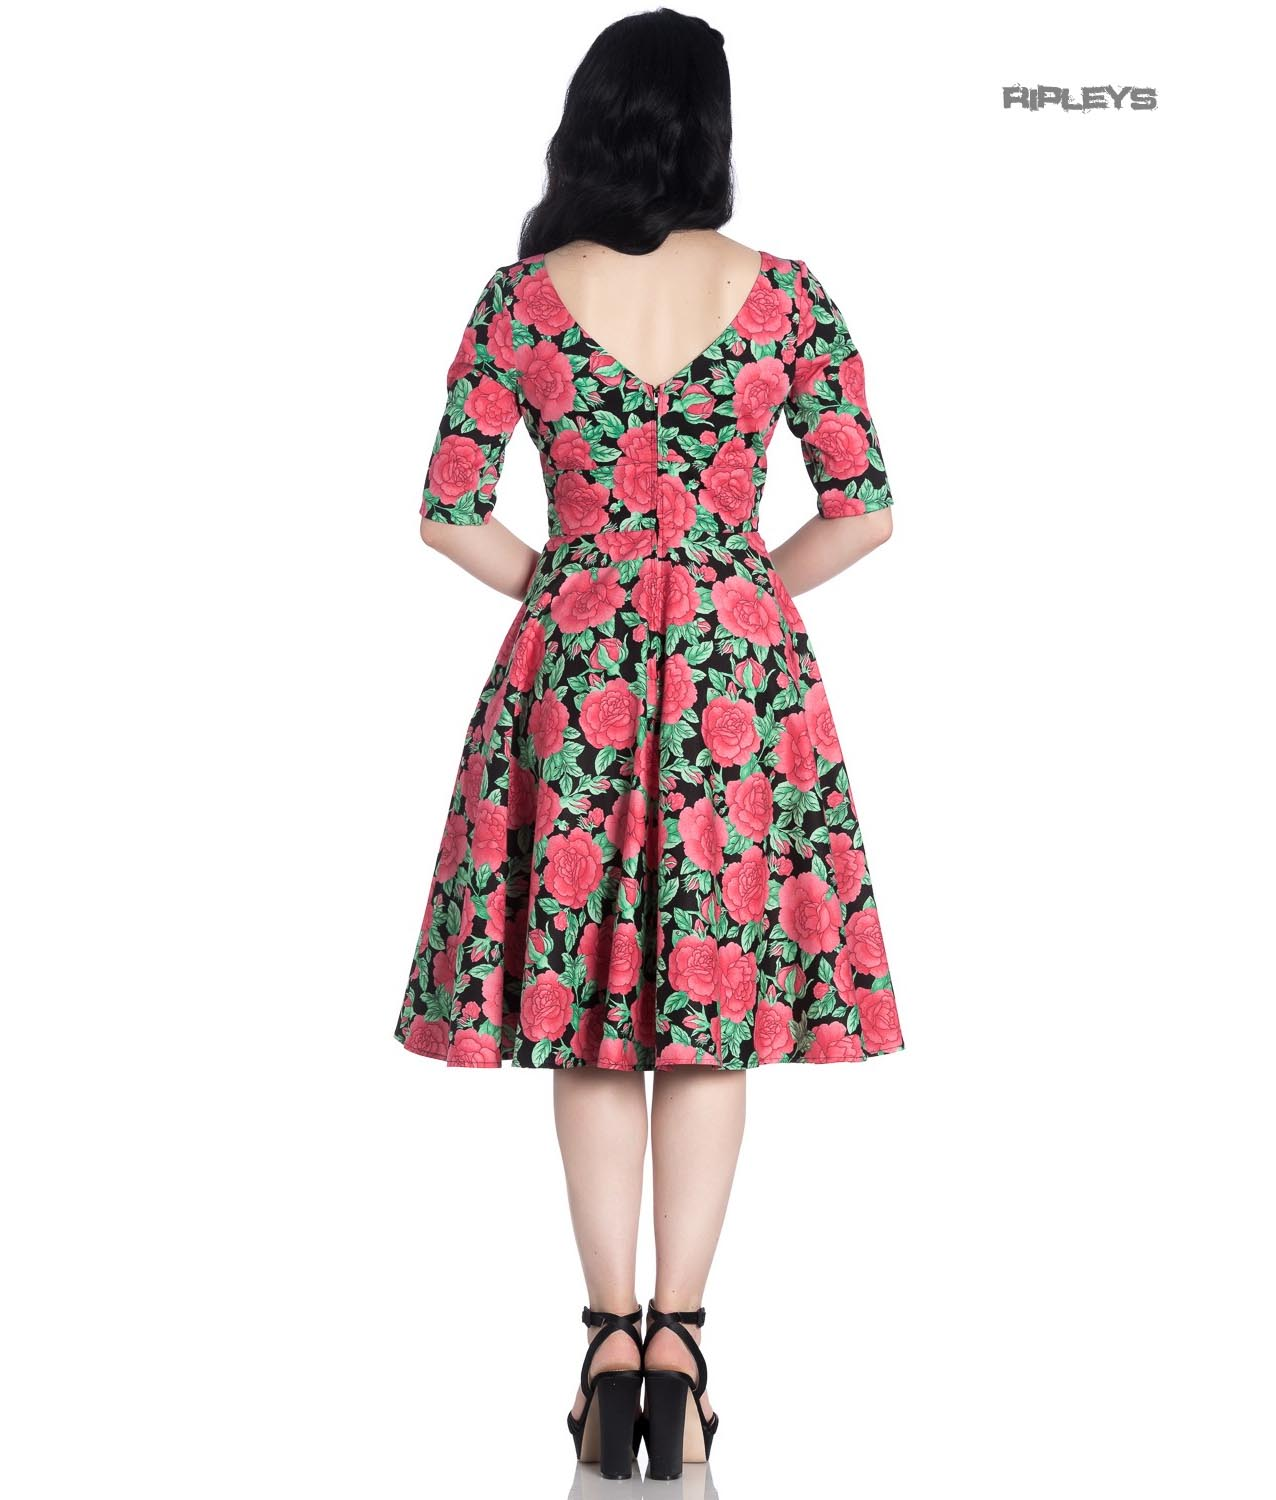 Hell-Bunny-40s-50s-Black-Pin-Up-Vintage-Dress-DARCY-Pink-Roses-All-Sizes thumbnail 12